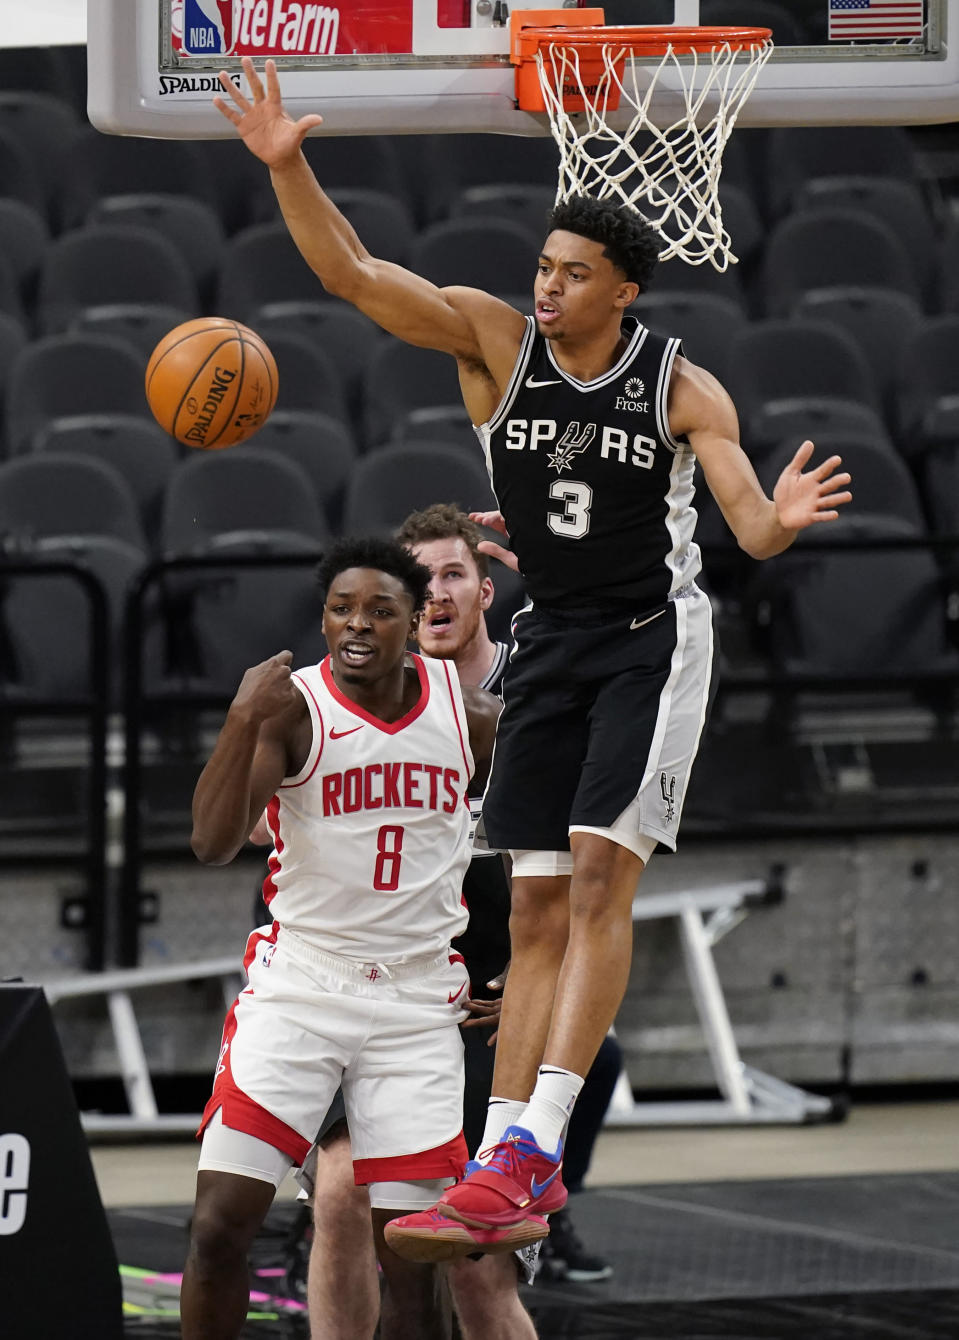 San Antonio Spurs forward Keldon Johnson (3) blocks a shot by Houston Rockets forward Jae'Sean Tate (8) during the first half of an NBA basketball game in San Antonio, Thursday, Jan. 14, 2021. (AP Photo/Eric Gay)